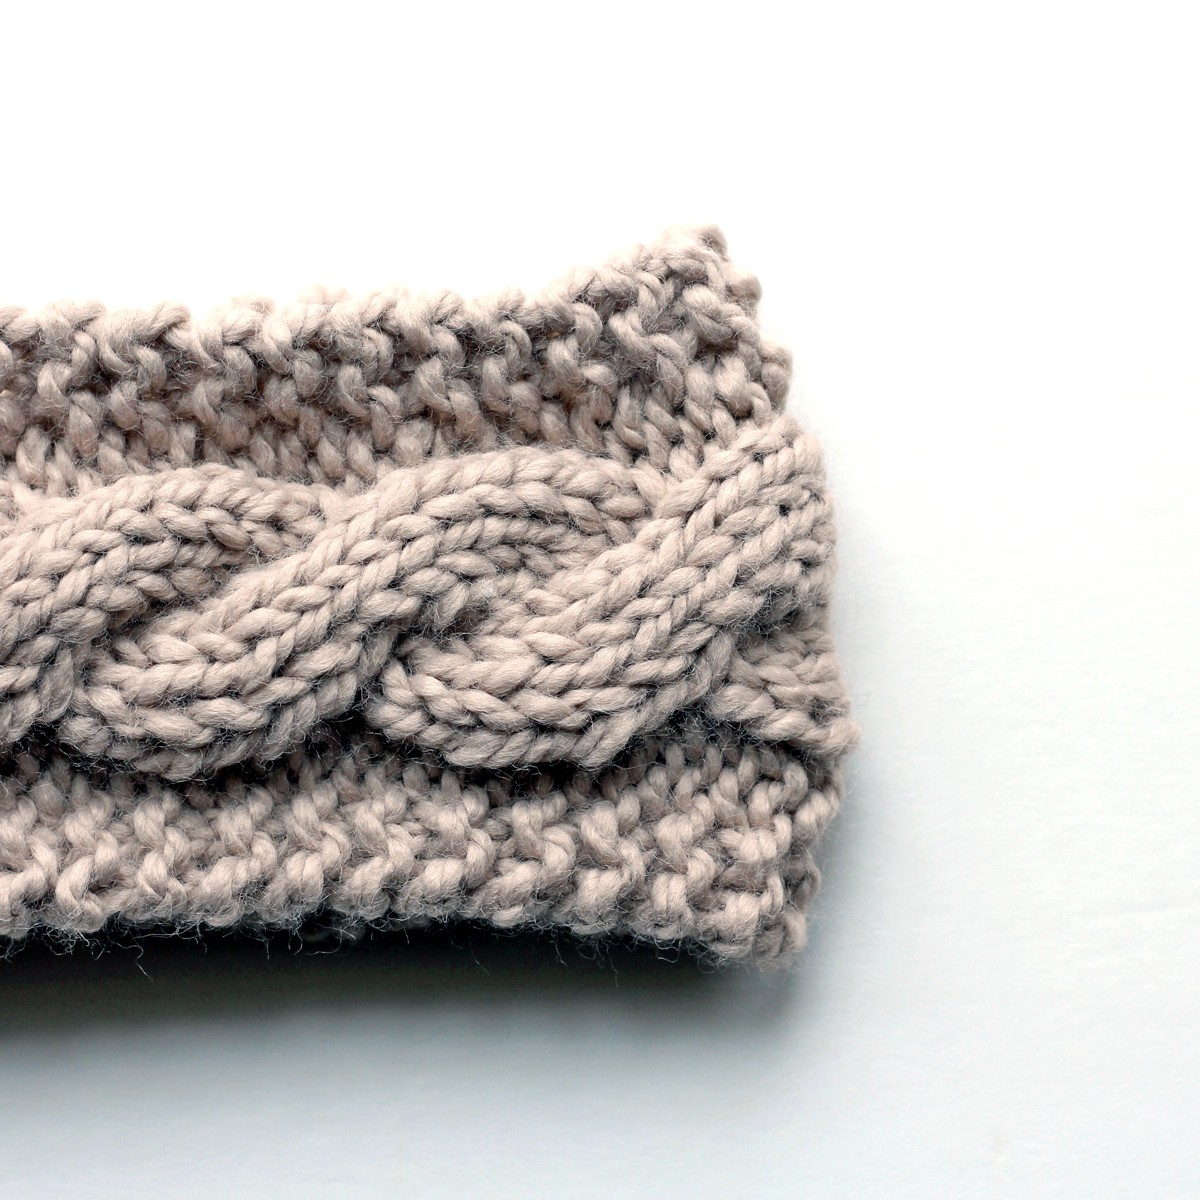 Estonian Knitting Patterns Free : {FREE} FRIENDSHIP : Headband Knitting Pattern   Brome Fields